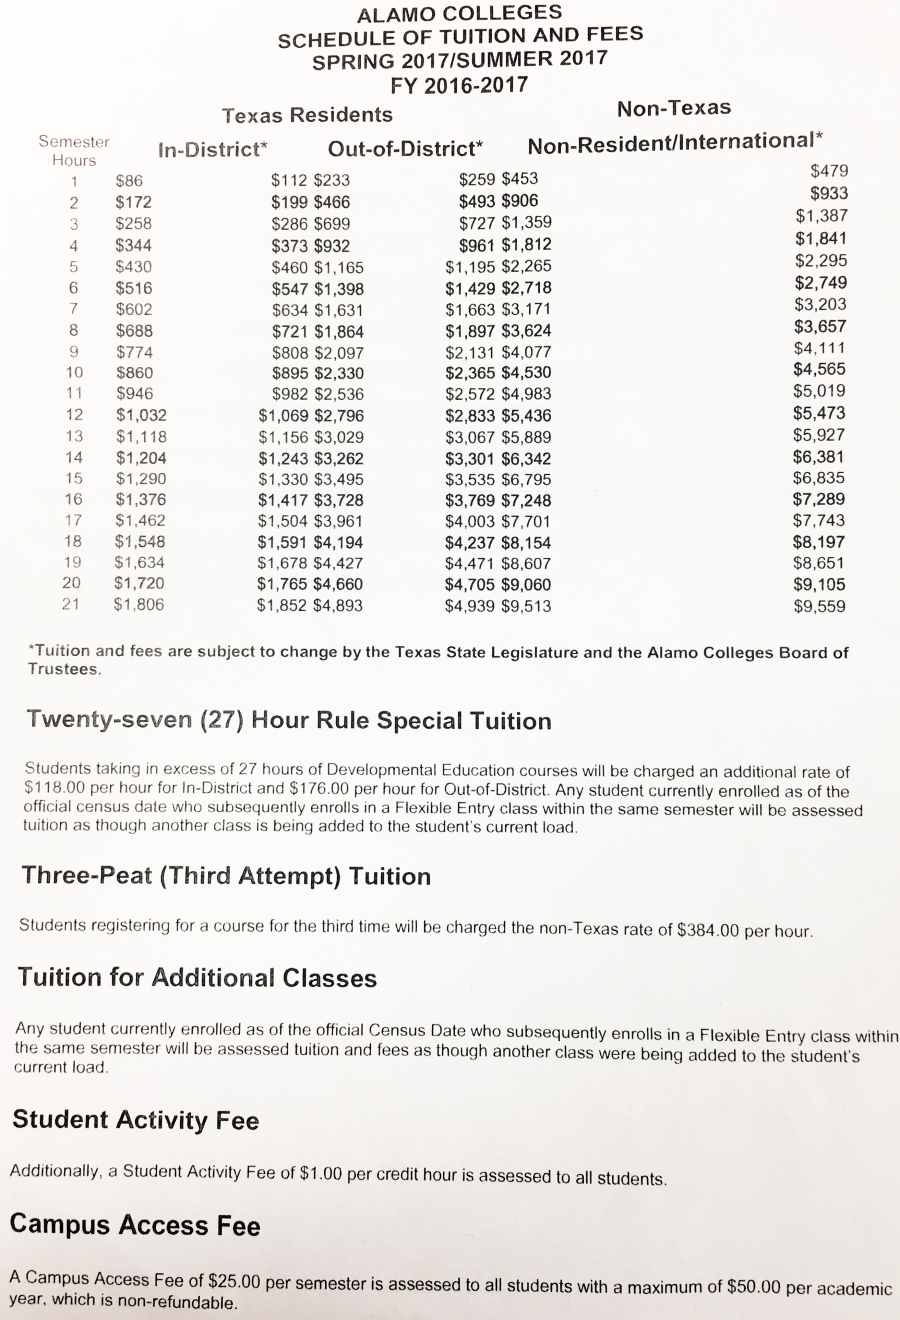 Alamo Colleges list of fees for 2016-2017 school year. Photo by Daniel Morales